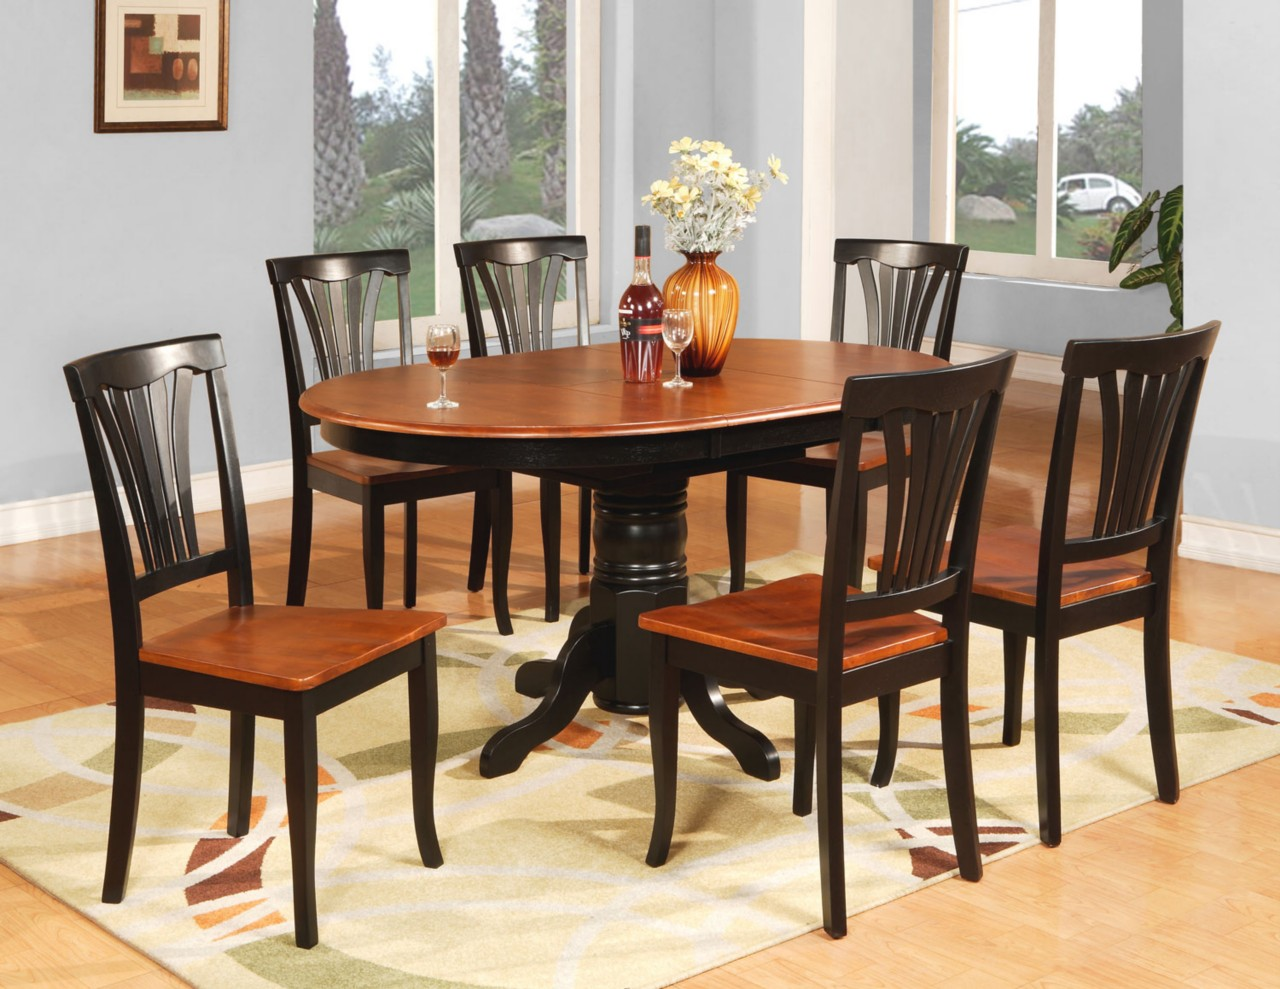 dinettestyle Store For Many More Dining Dinette Kitchen Table amp; Chairs